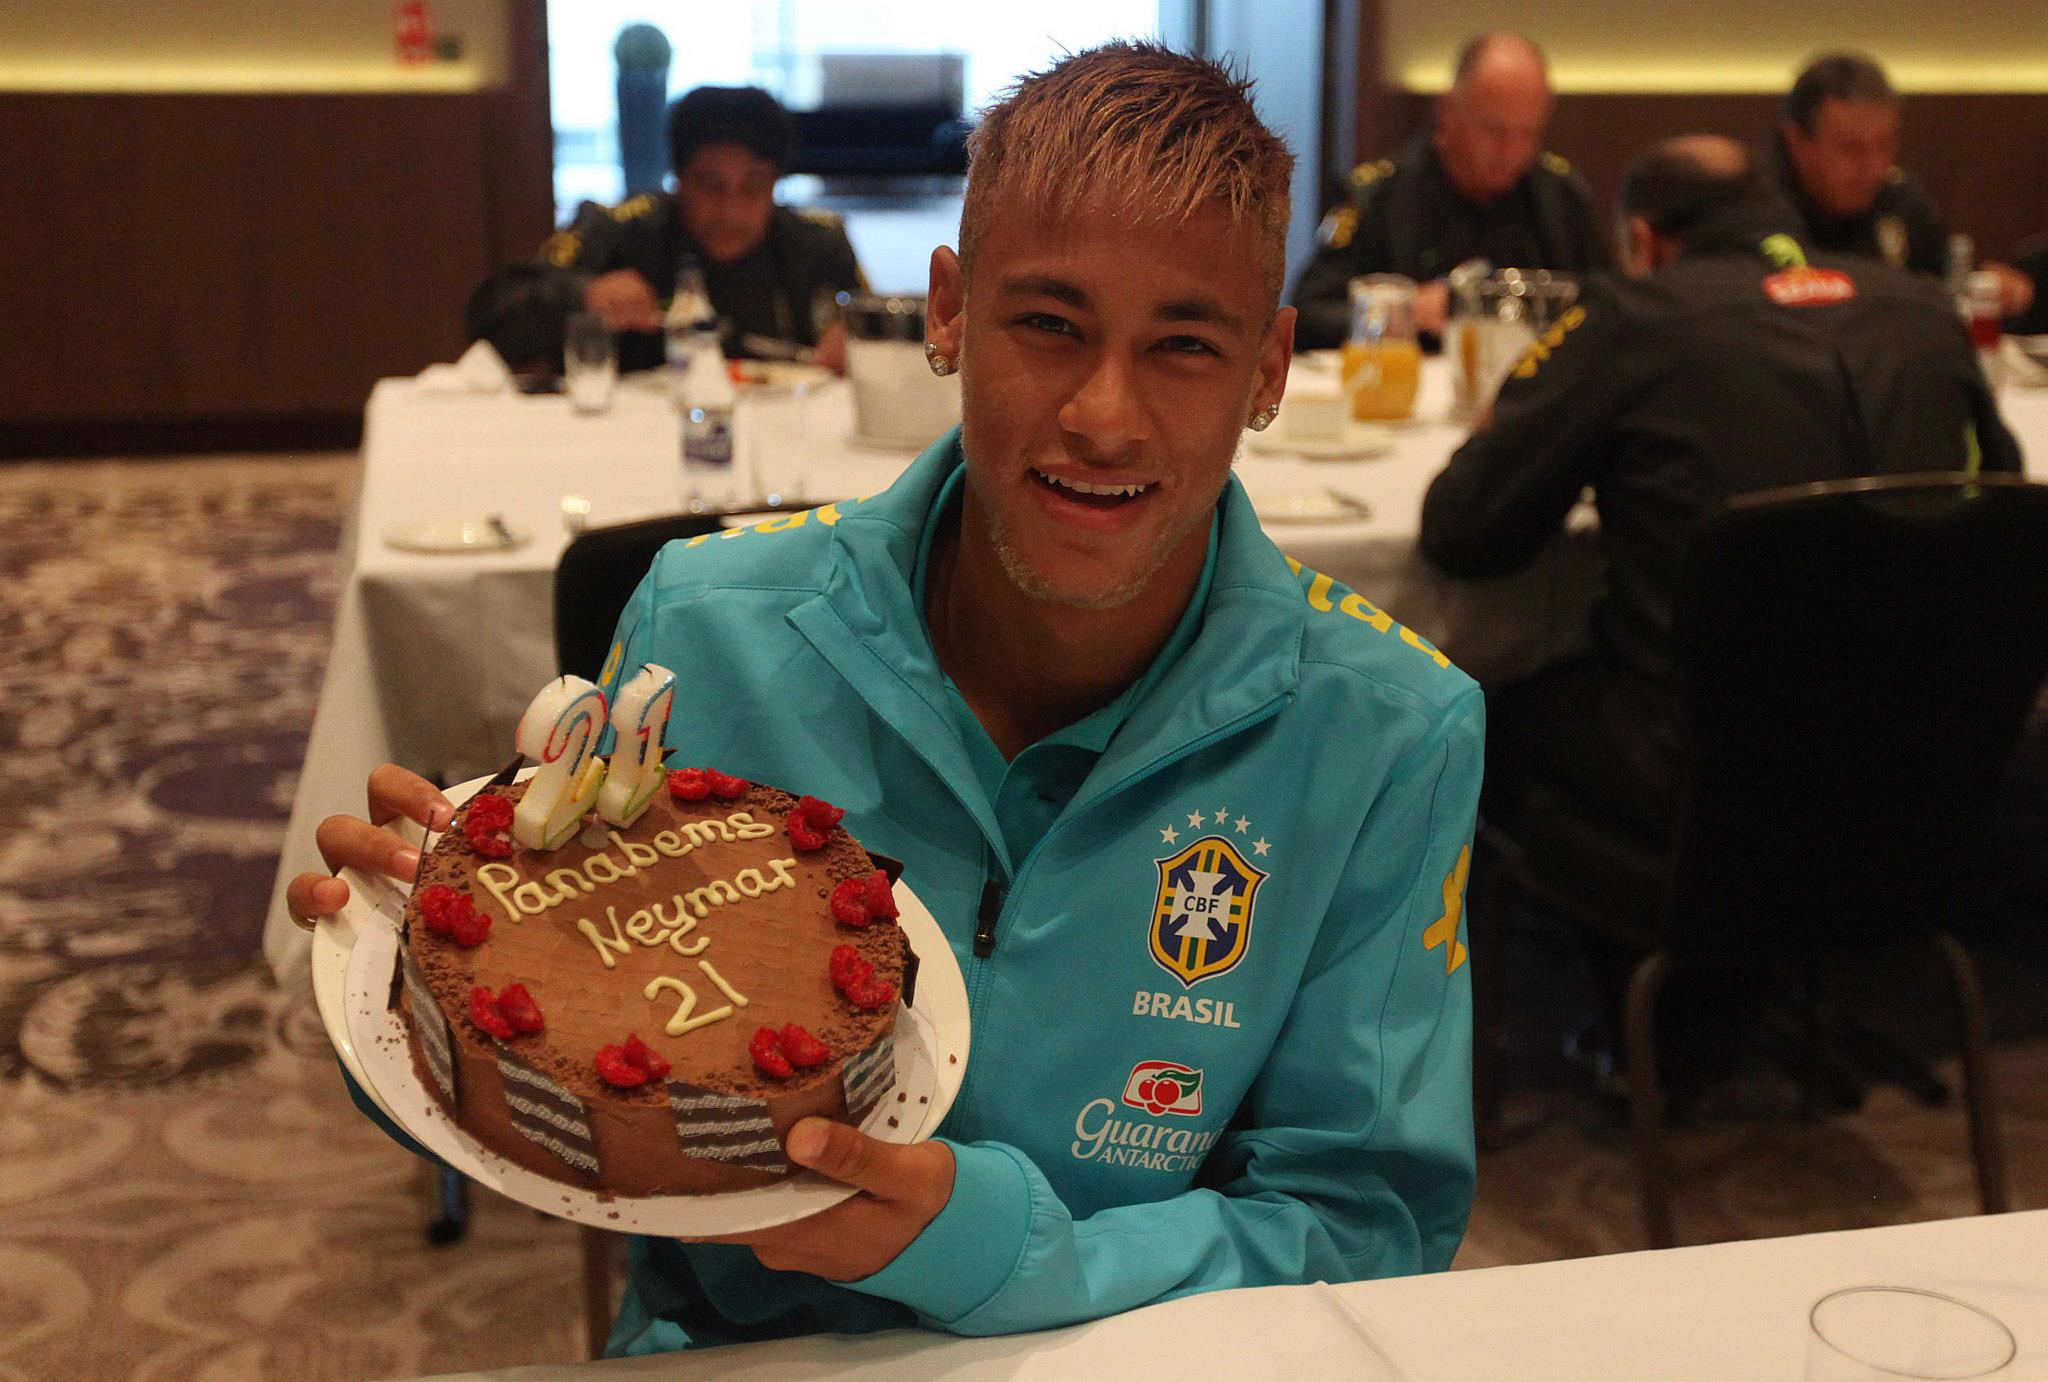 156 Images About Neymar Jr On We Heart It See More About Neymar